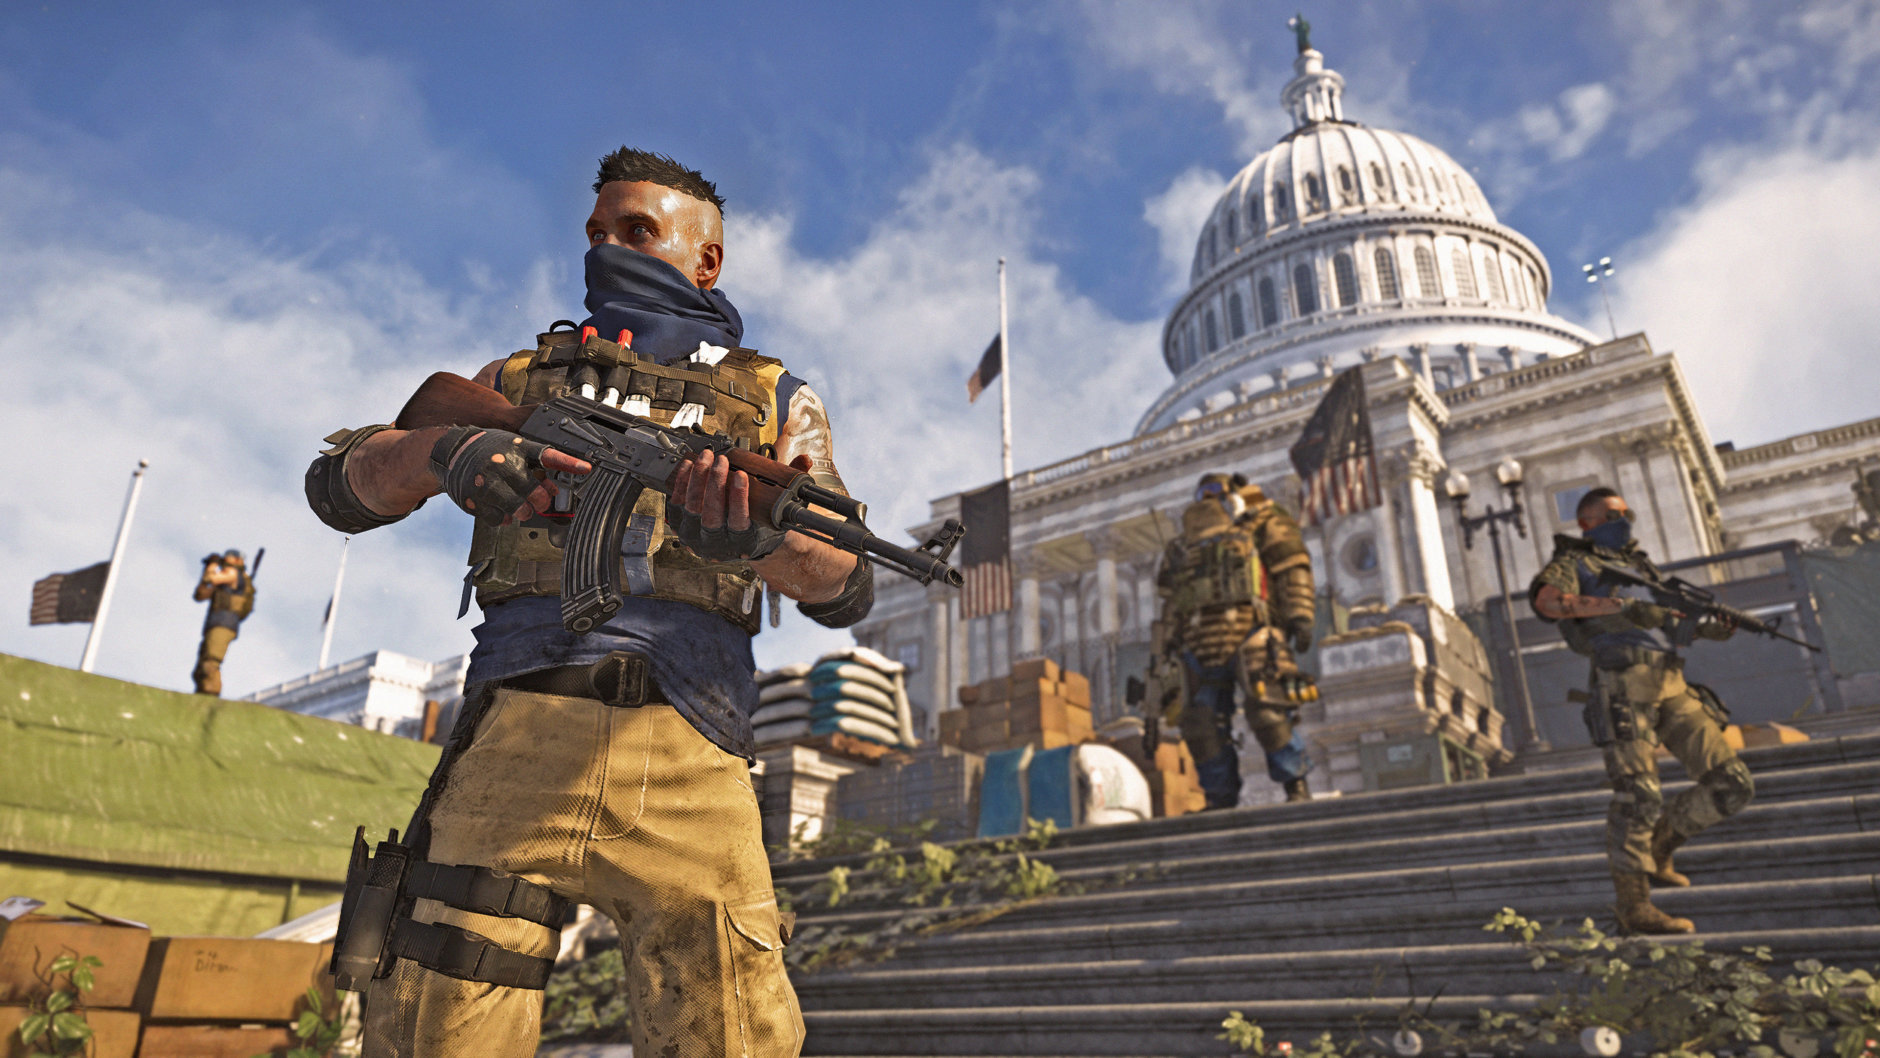 The True Sons are a band of militant enemies in Division 2. (Courtesy Ubisoft/Massive)